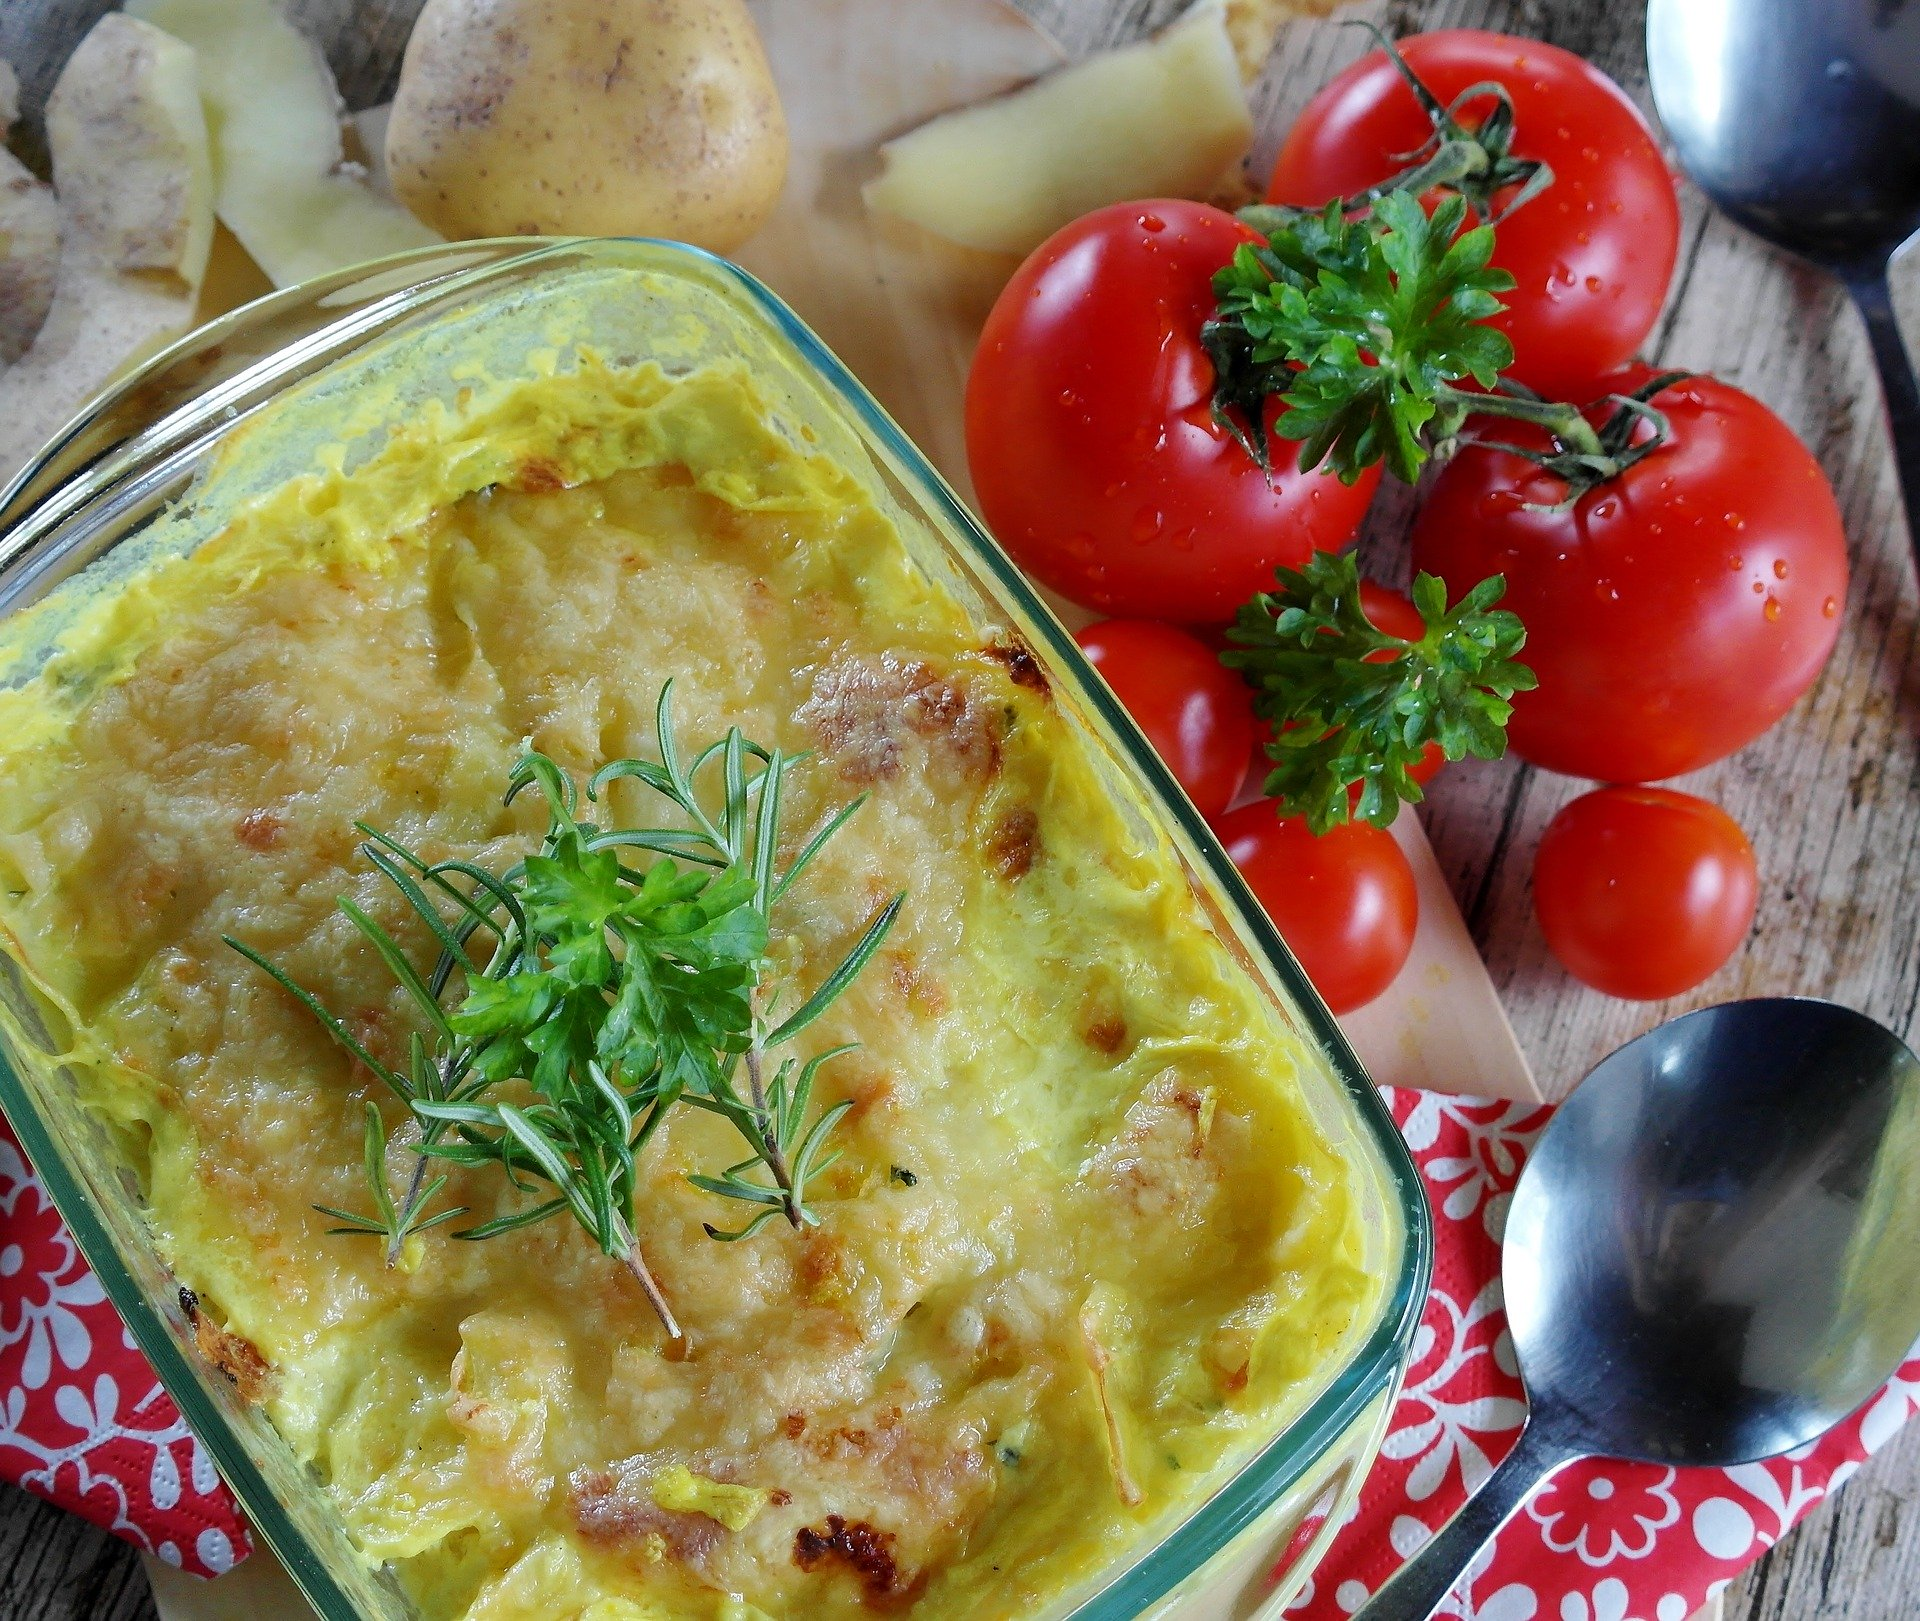 A cheesy casserole next to tomatoes